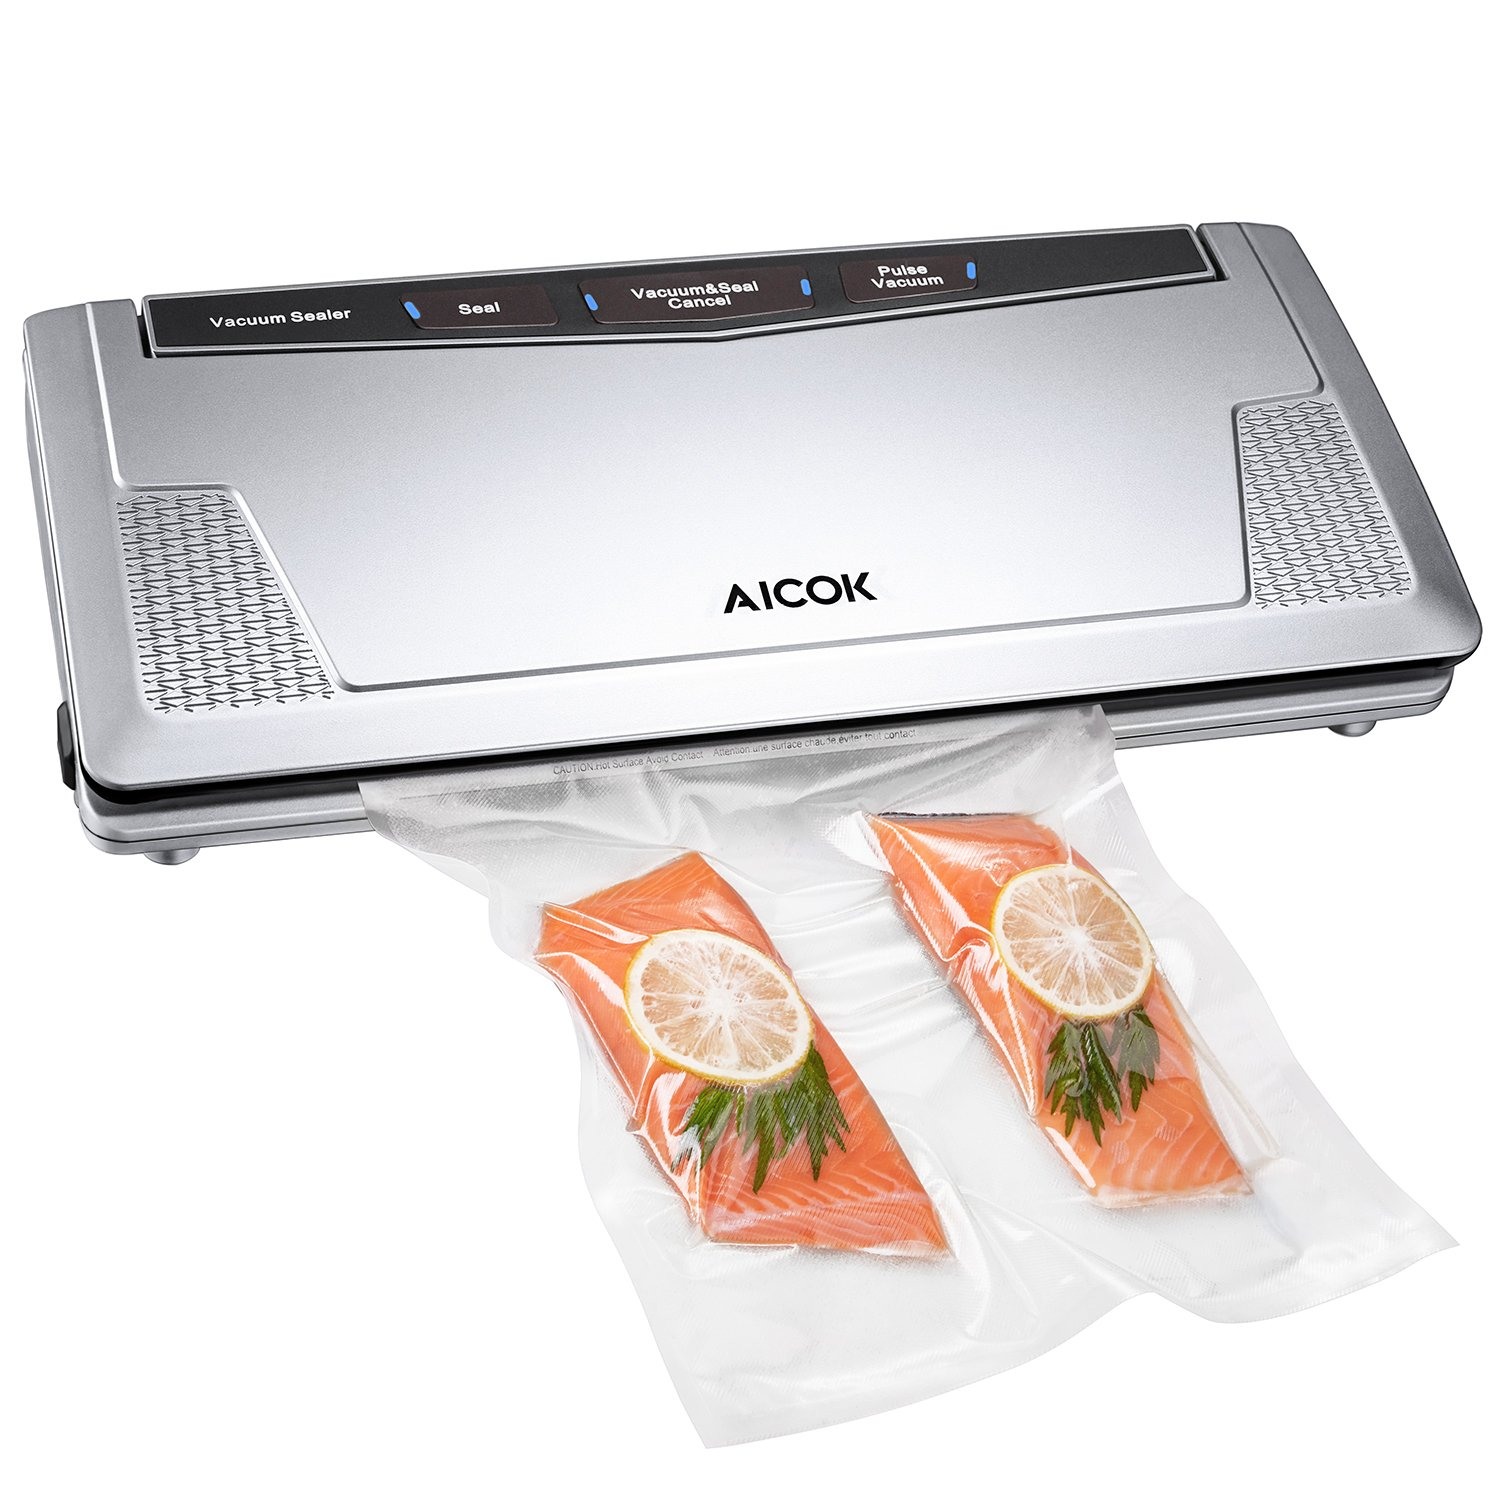 Lovely Amazon.com: Aicok Vacuum Sealer, Food Sealer With 10 Starter Bags For Food  Preservation, Automatic Vacuum Sealing System, Food Savers Vacuum Machine,  ...